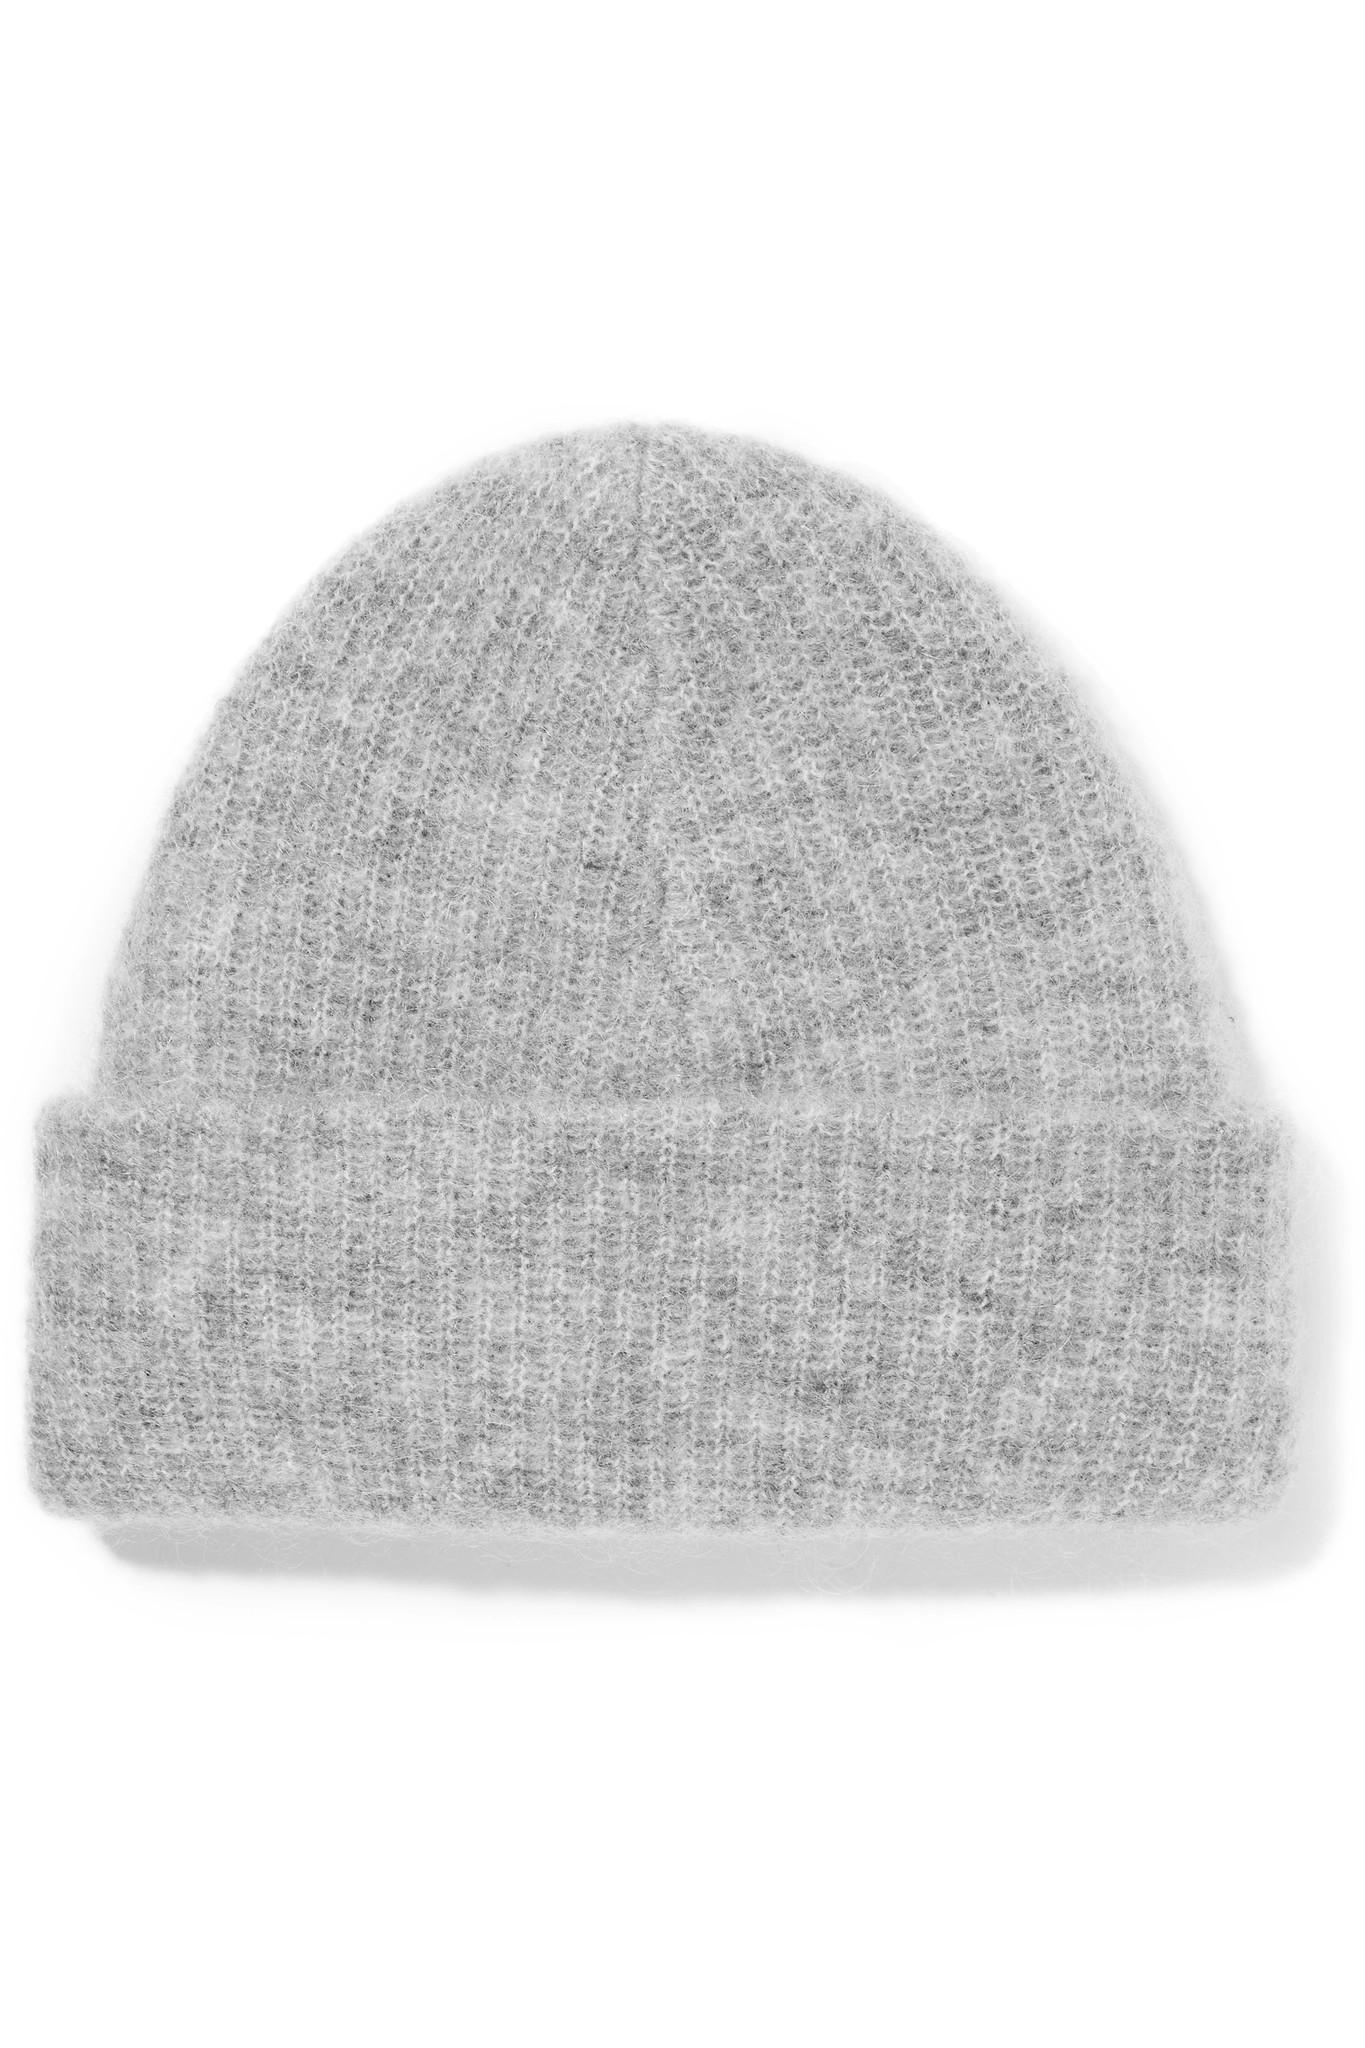 12e34c99074d5 Ganni Ribbed-knit Beanie in Gray - Lyst